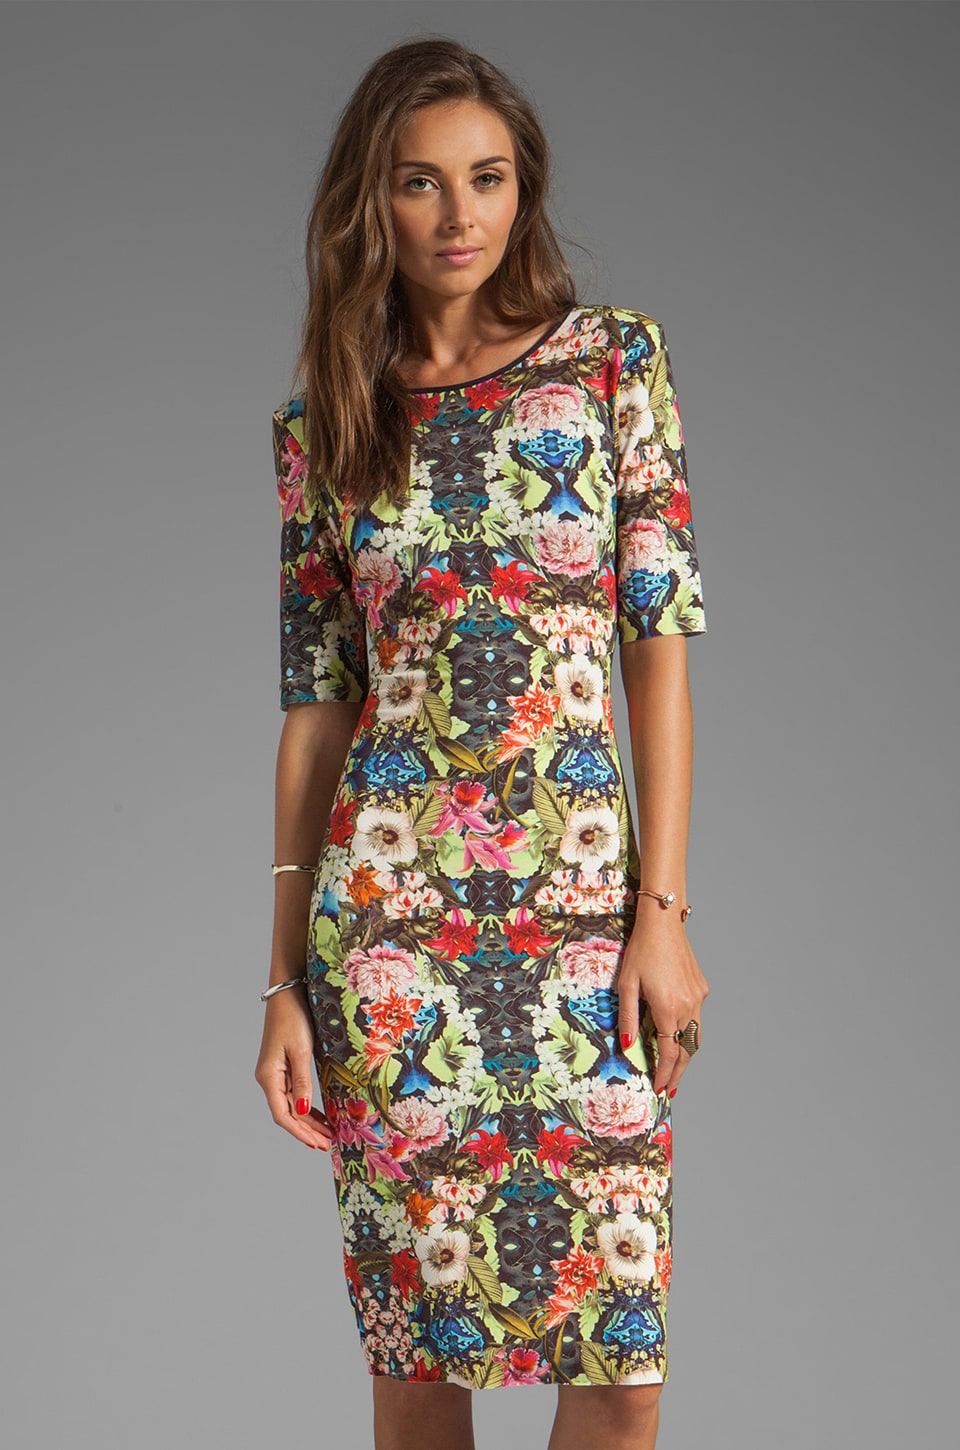 SAM&LAVI Nola Dress in Leilani Print